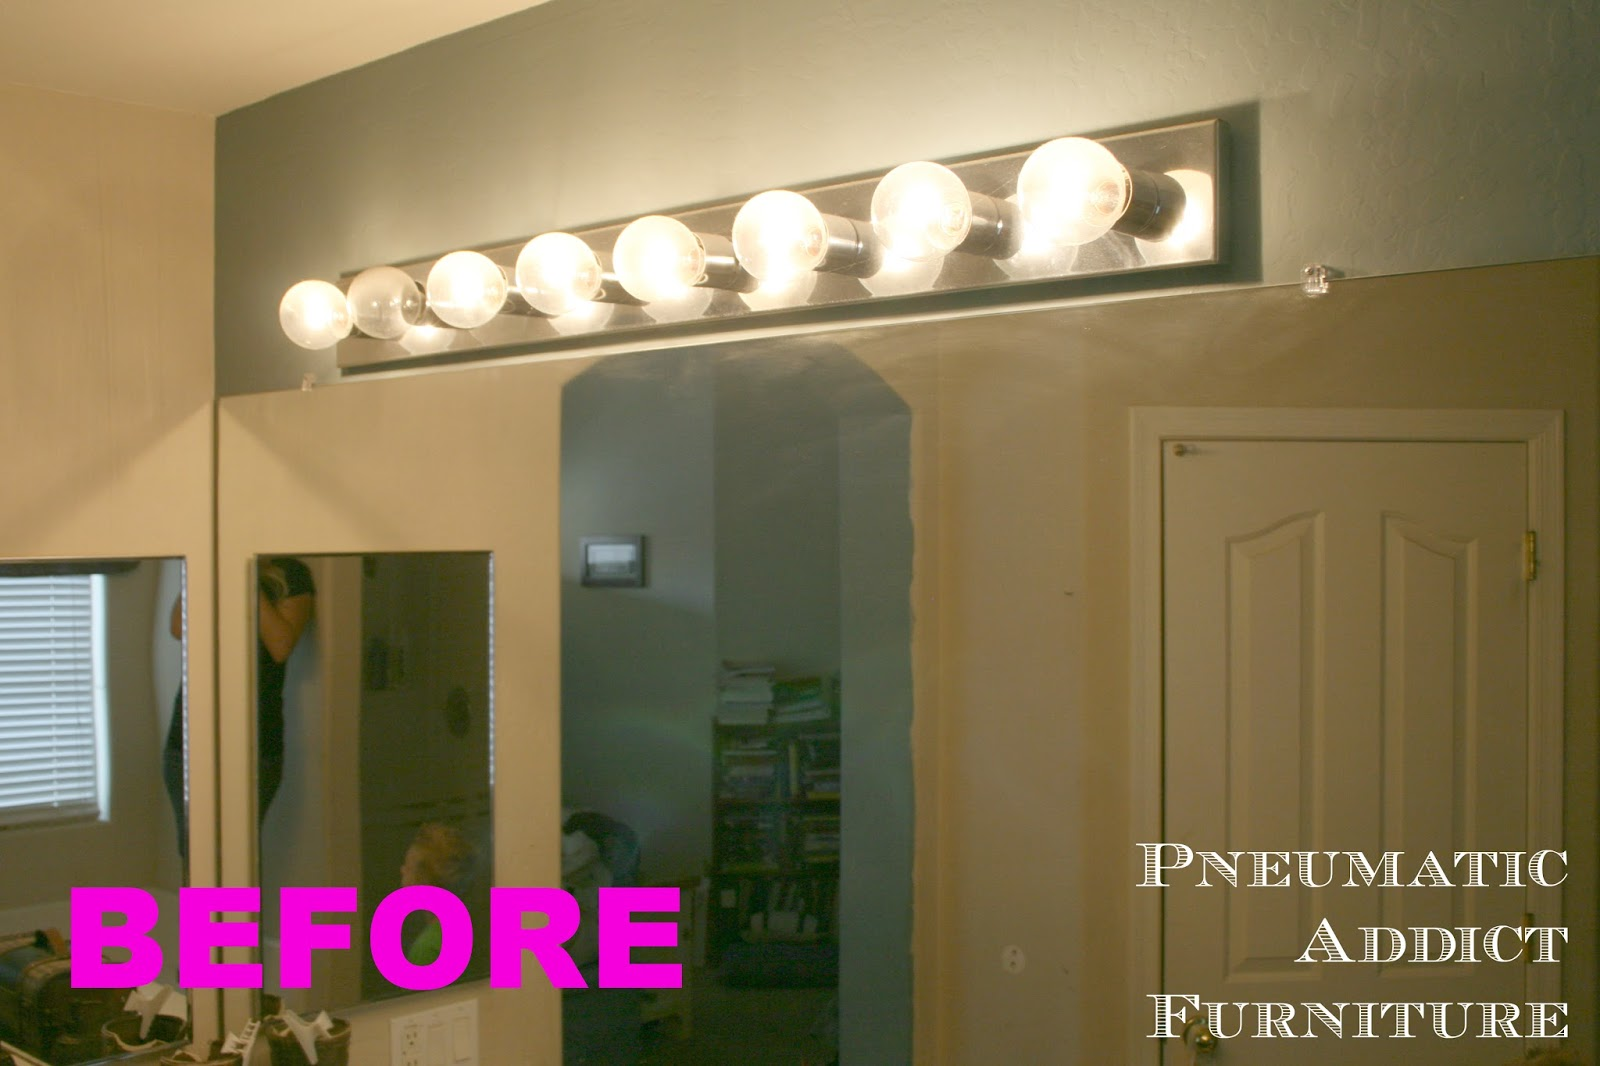 Replace Vanity Light Bar With Two Lights : Pneumatic Addict : Bathroom Upgrade Part 1: Splitting the Vanity Light